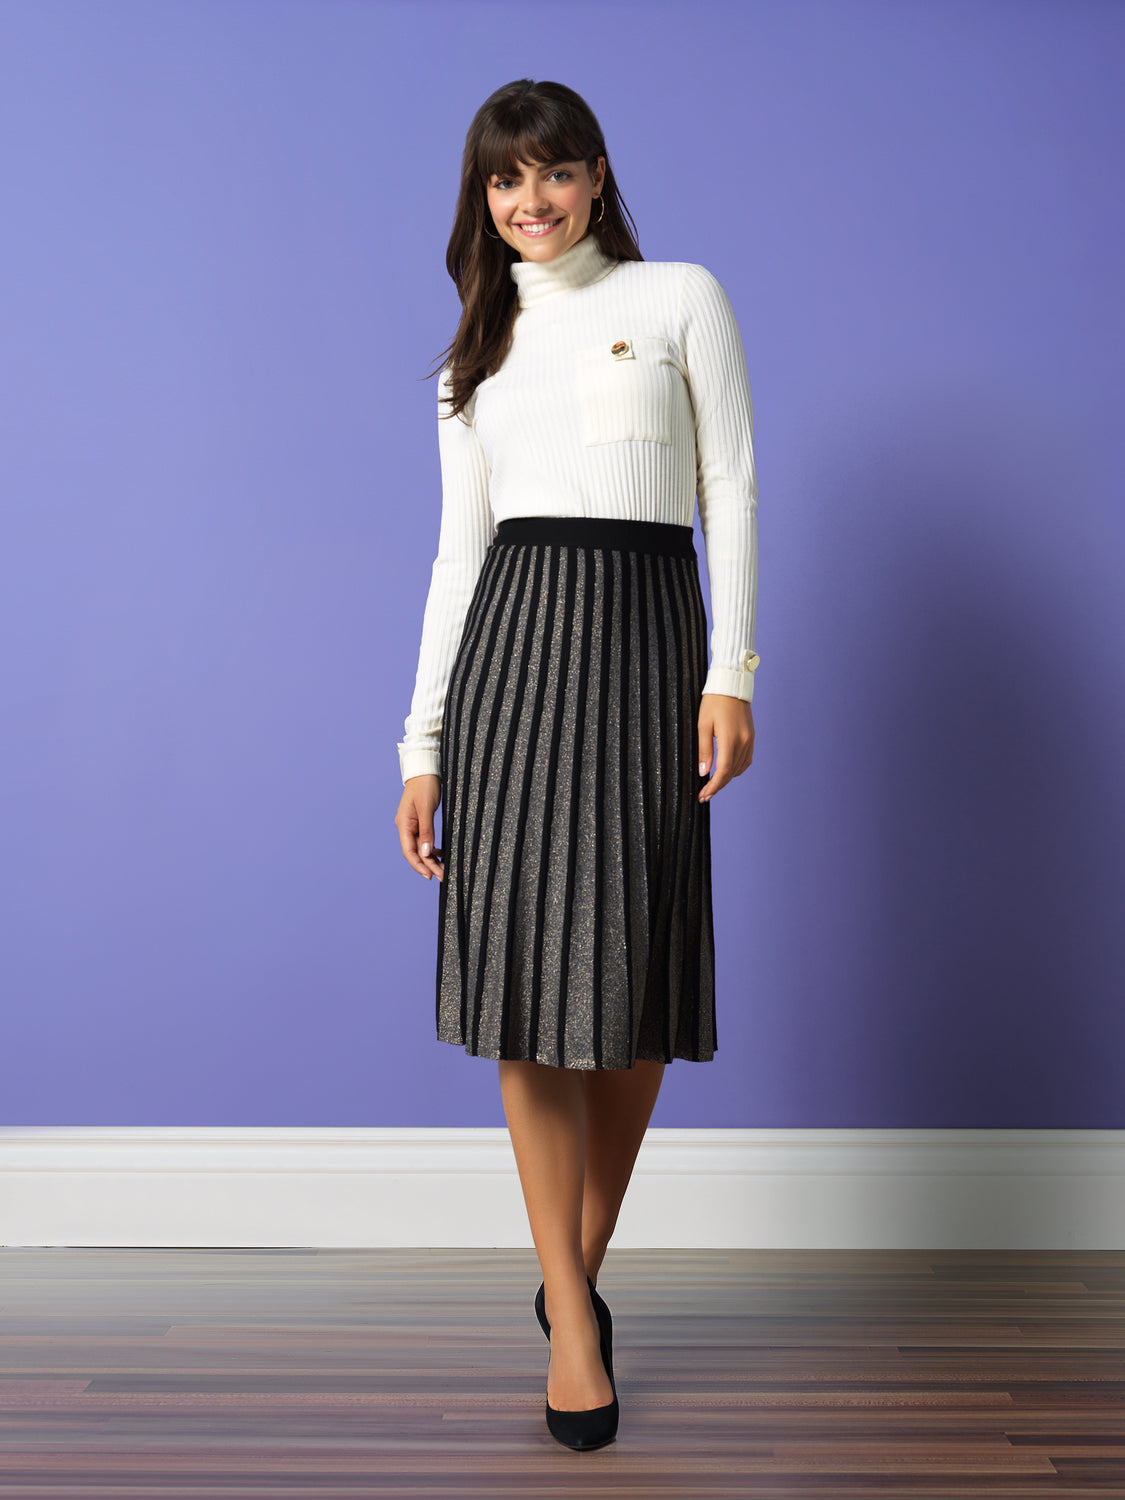 A-Line Sweater Skirt